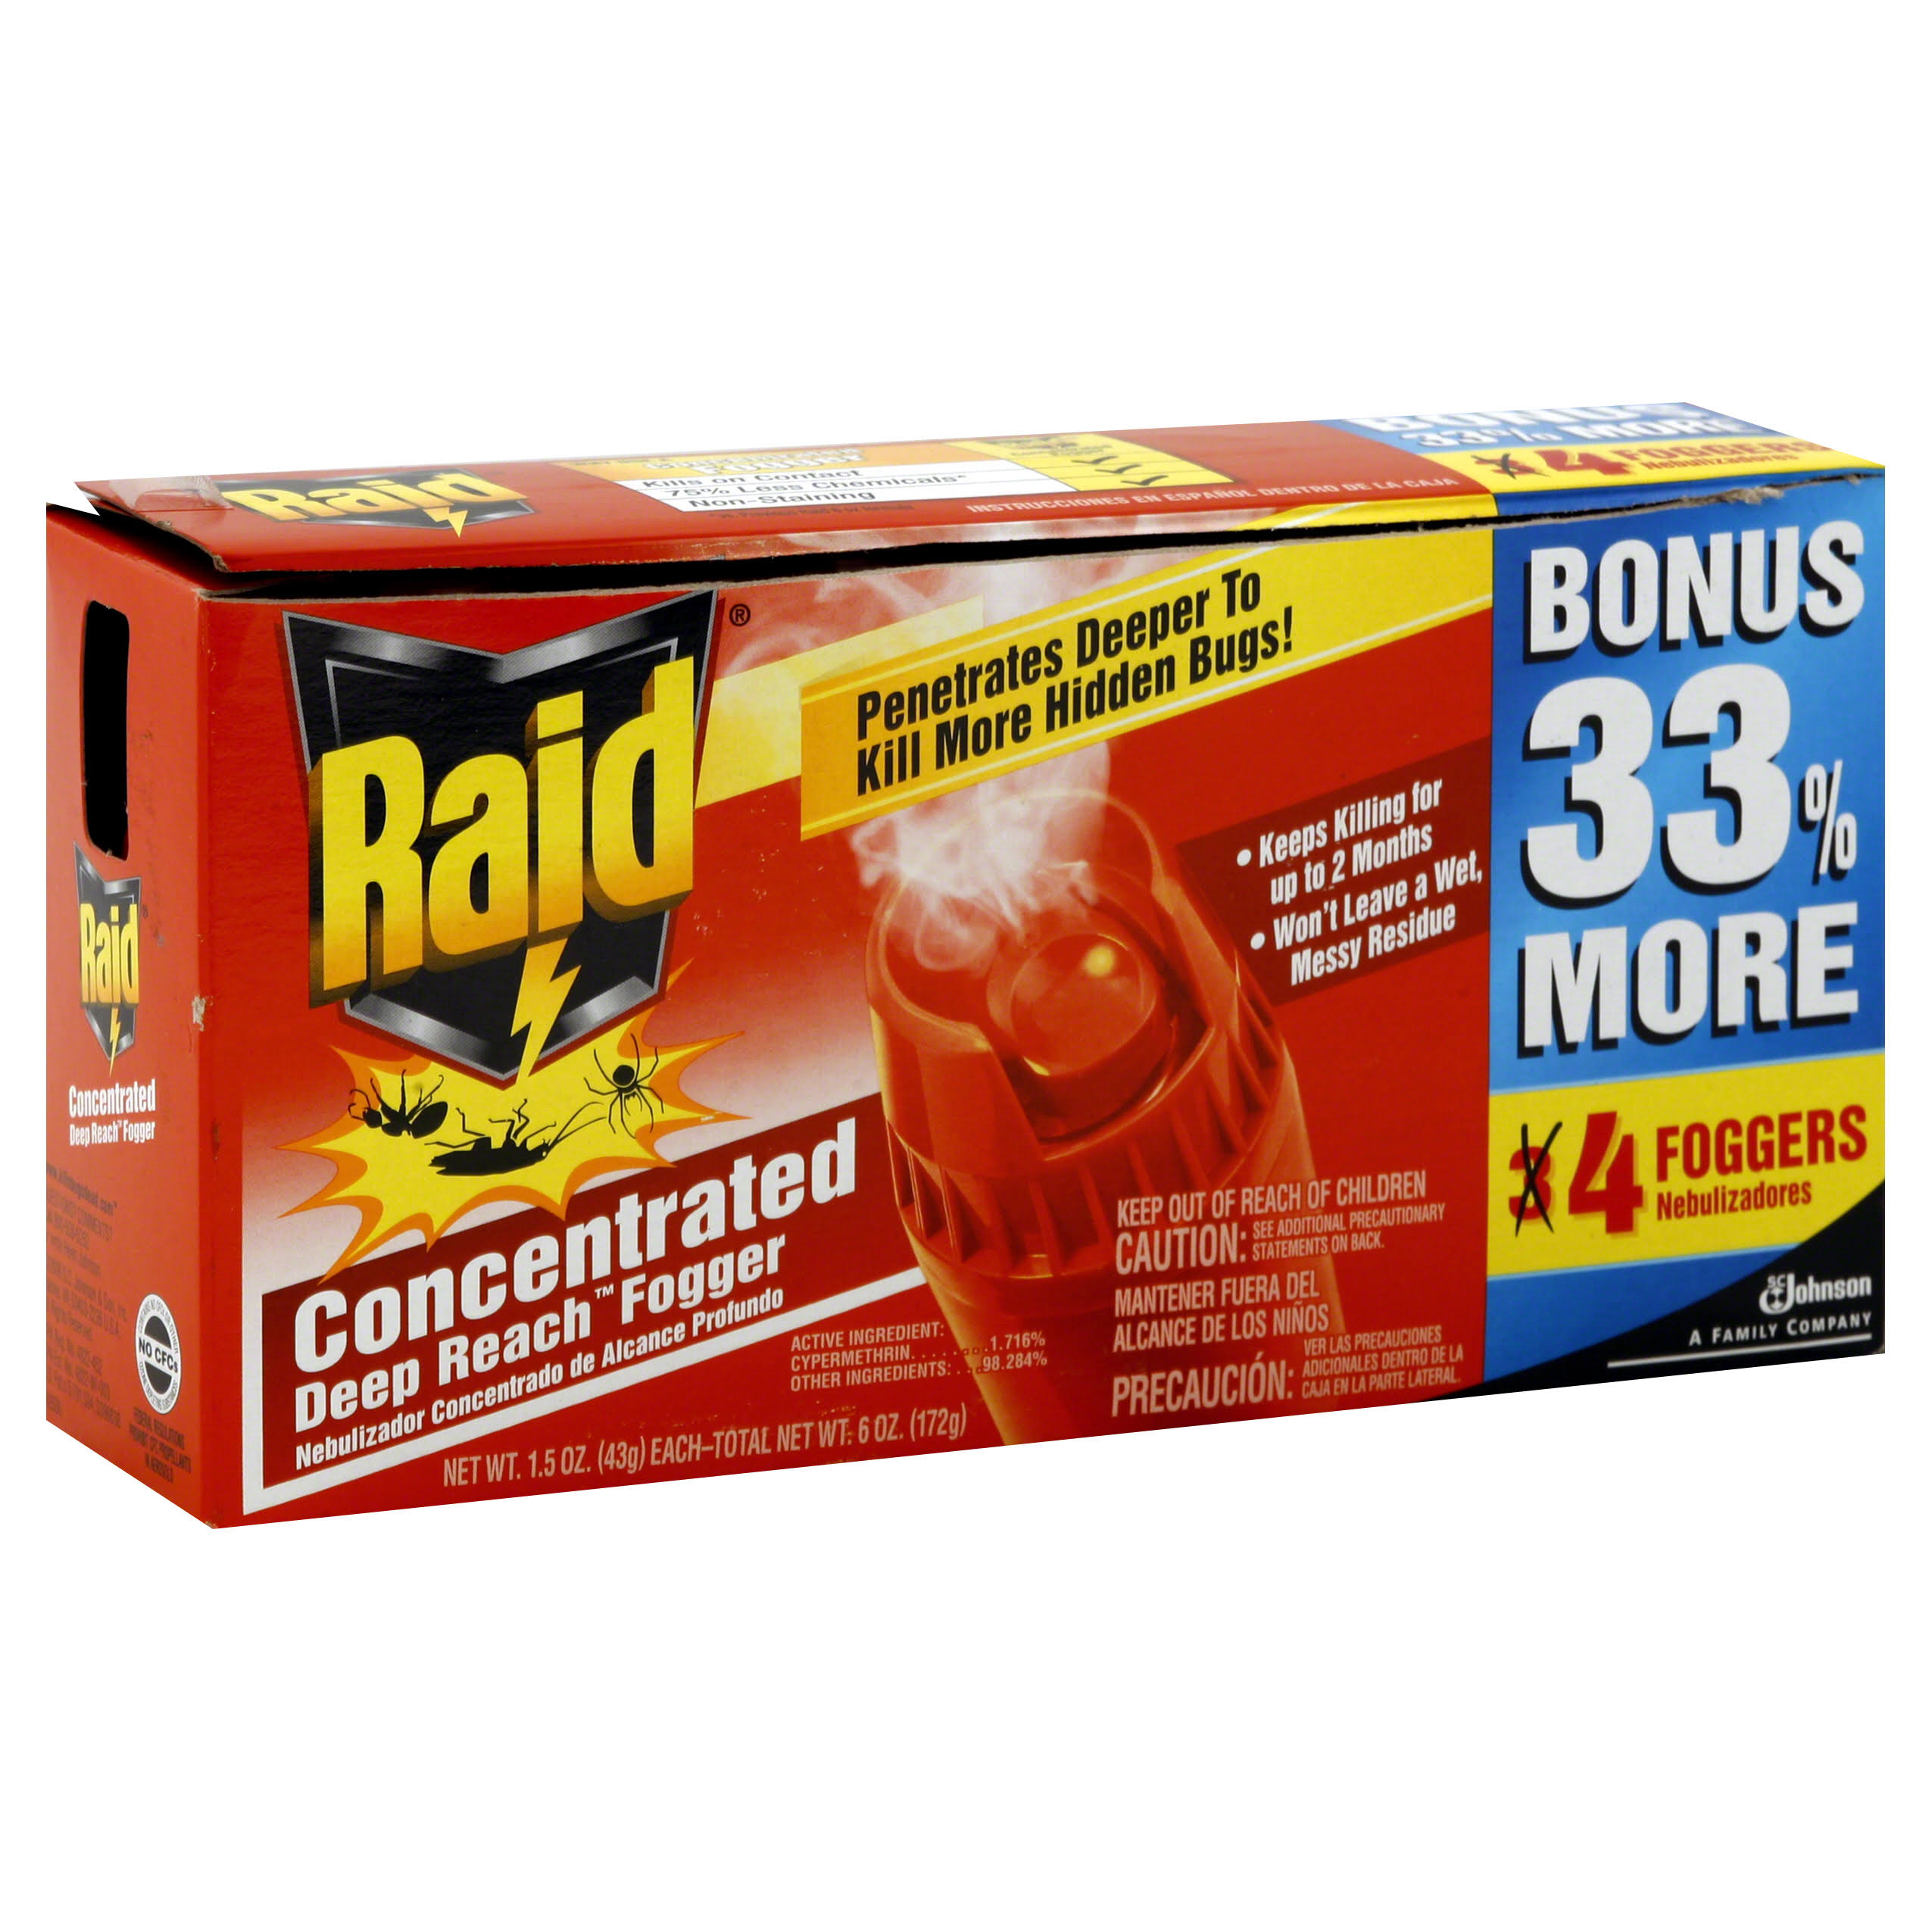 SC Johnson Raid Concentrated Deep Reach Fogger - 1.5oz, 4pk